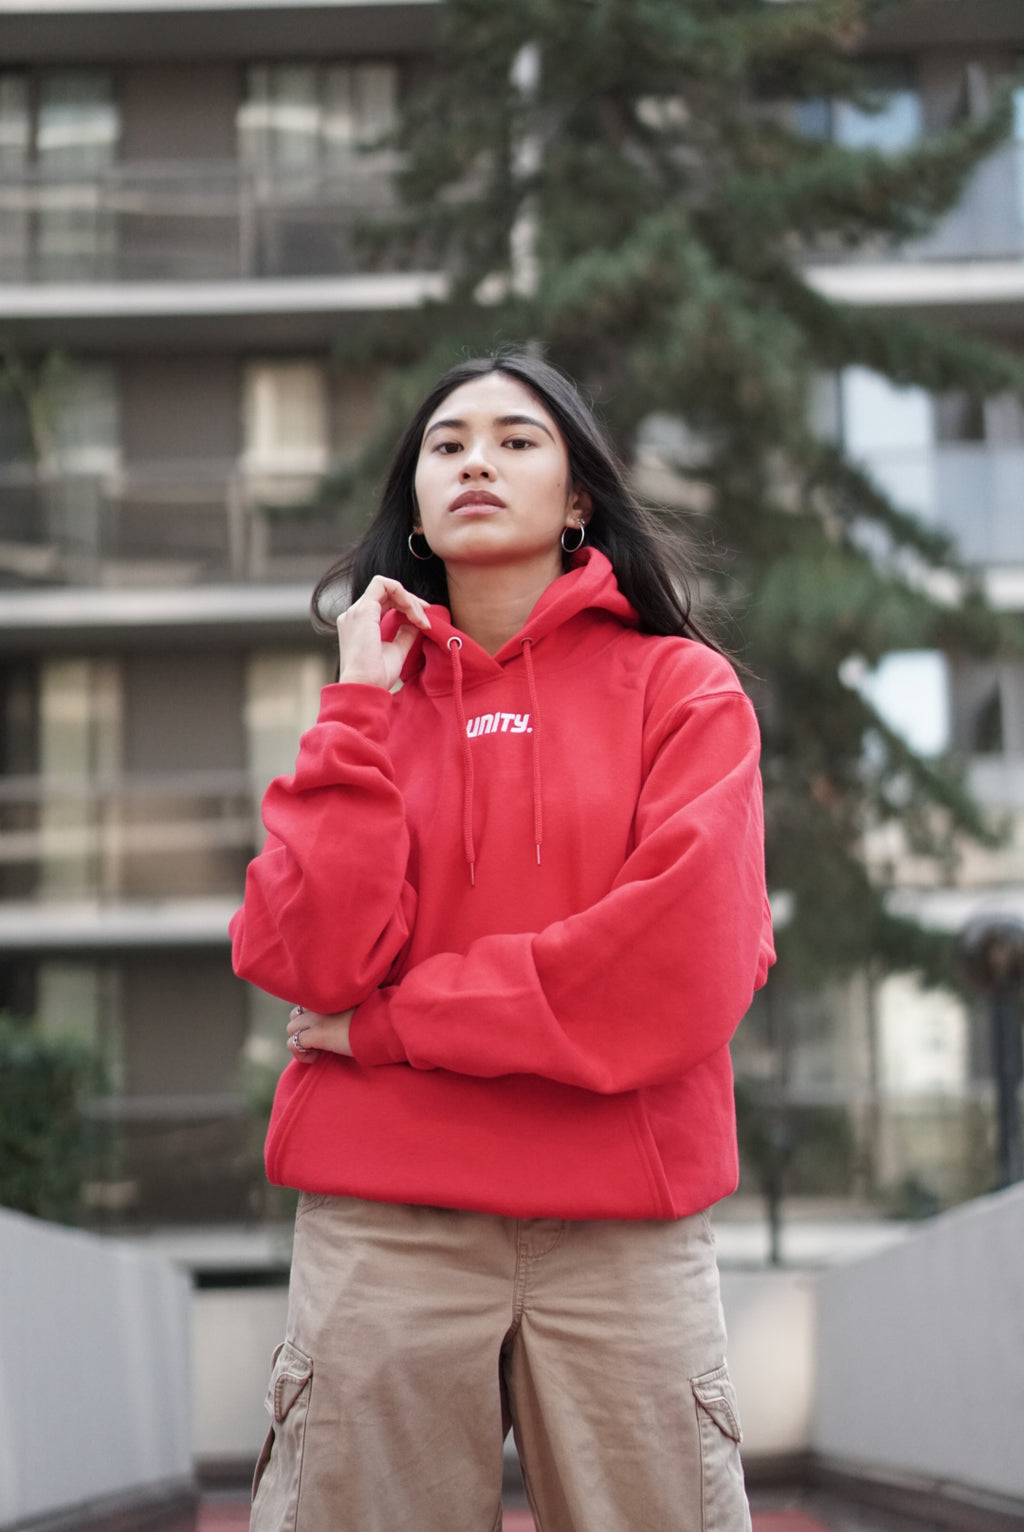 Unity Hoodie - Red w/ White